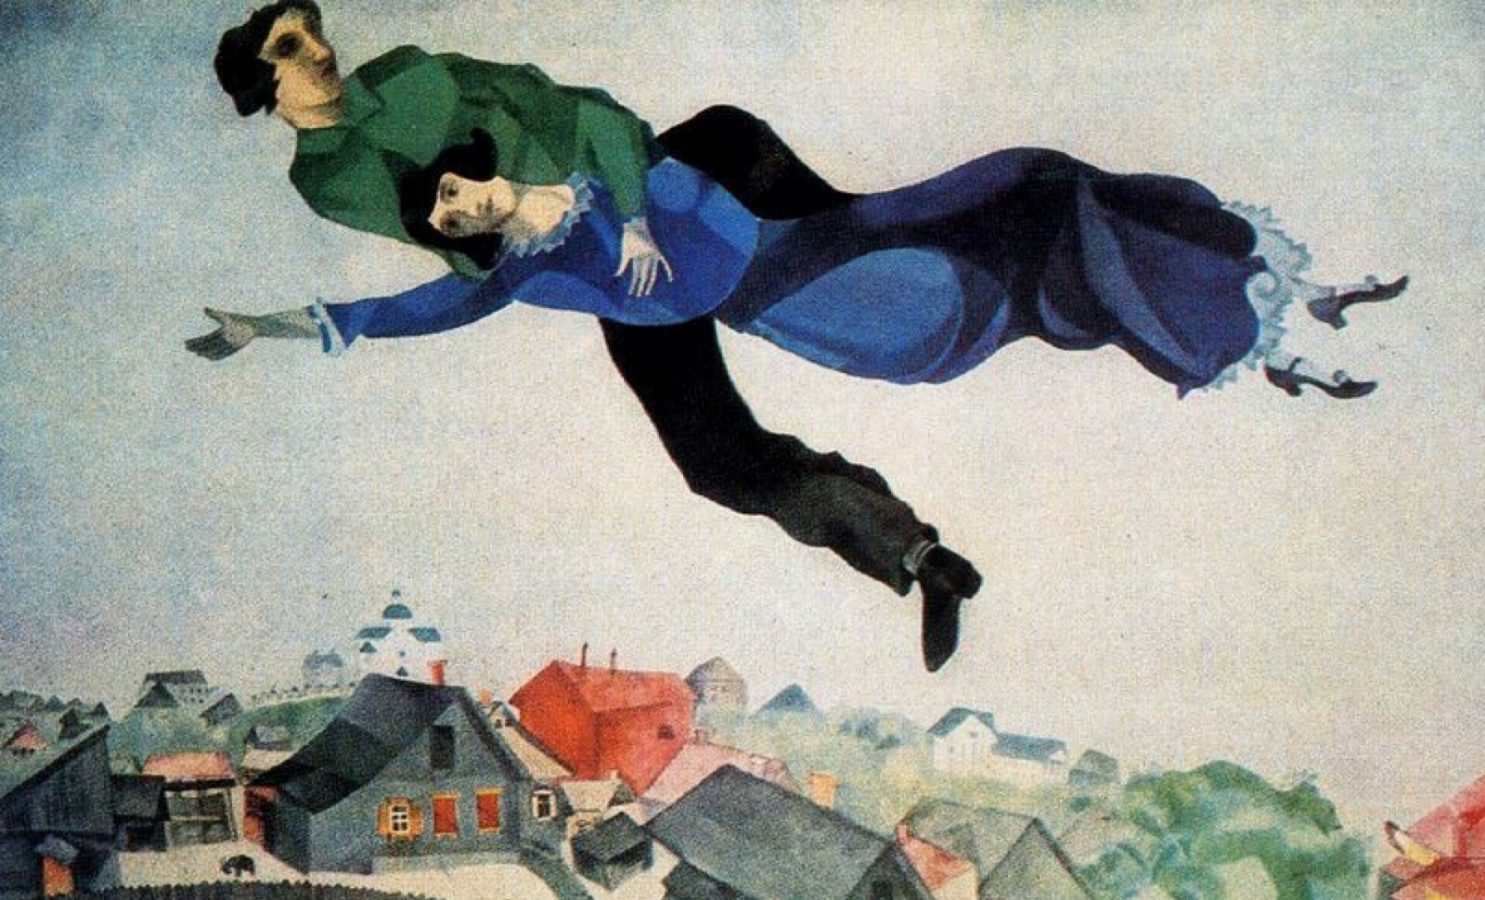 Chagall: The Quintessential Jewish Artist of the 20th Century